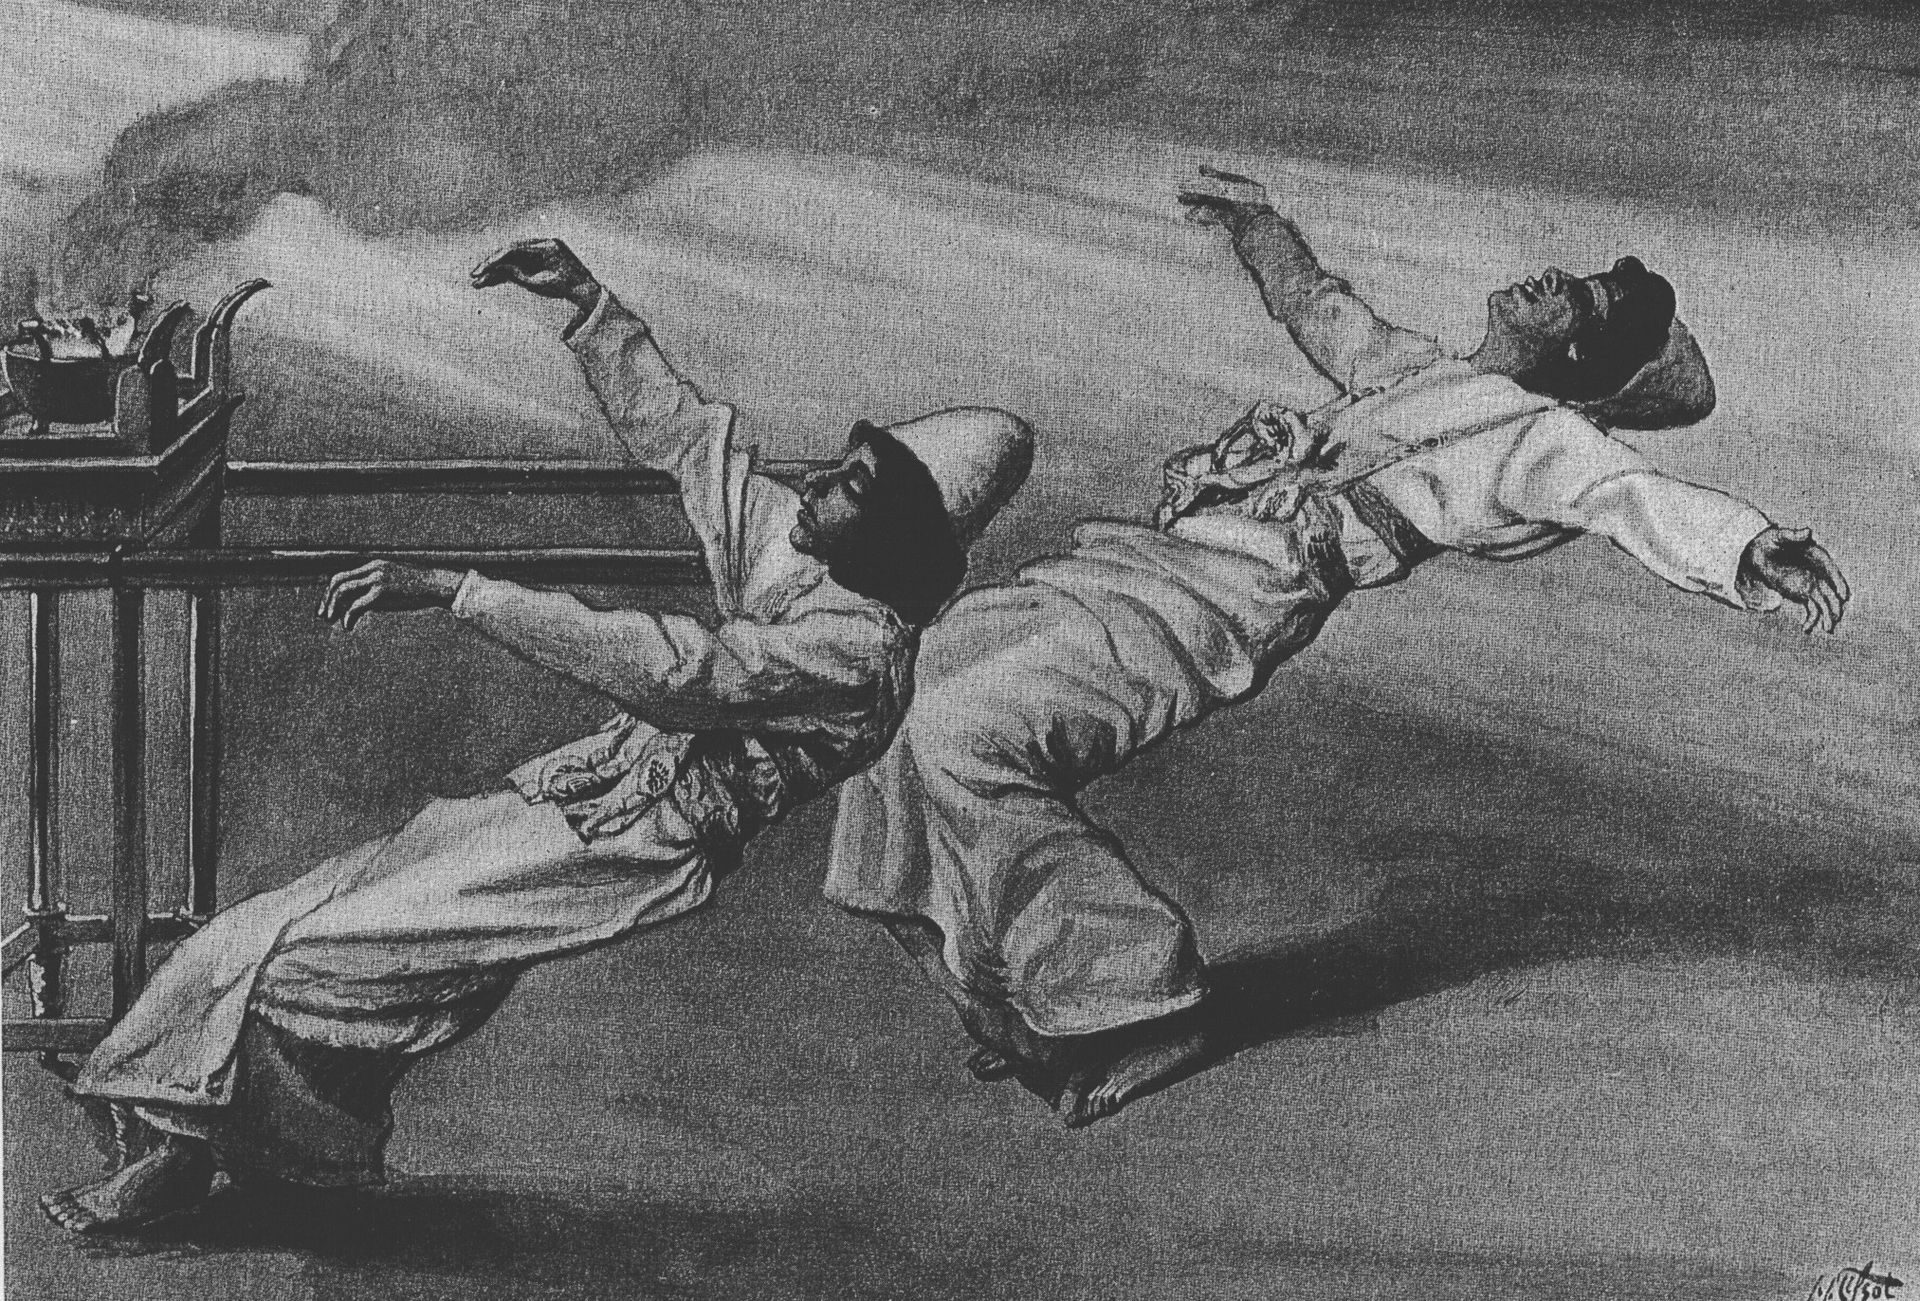 black and white drawing of nadav and avihu being thrown backwards by a flash of light